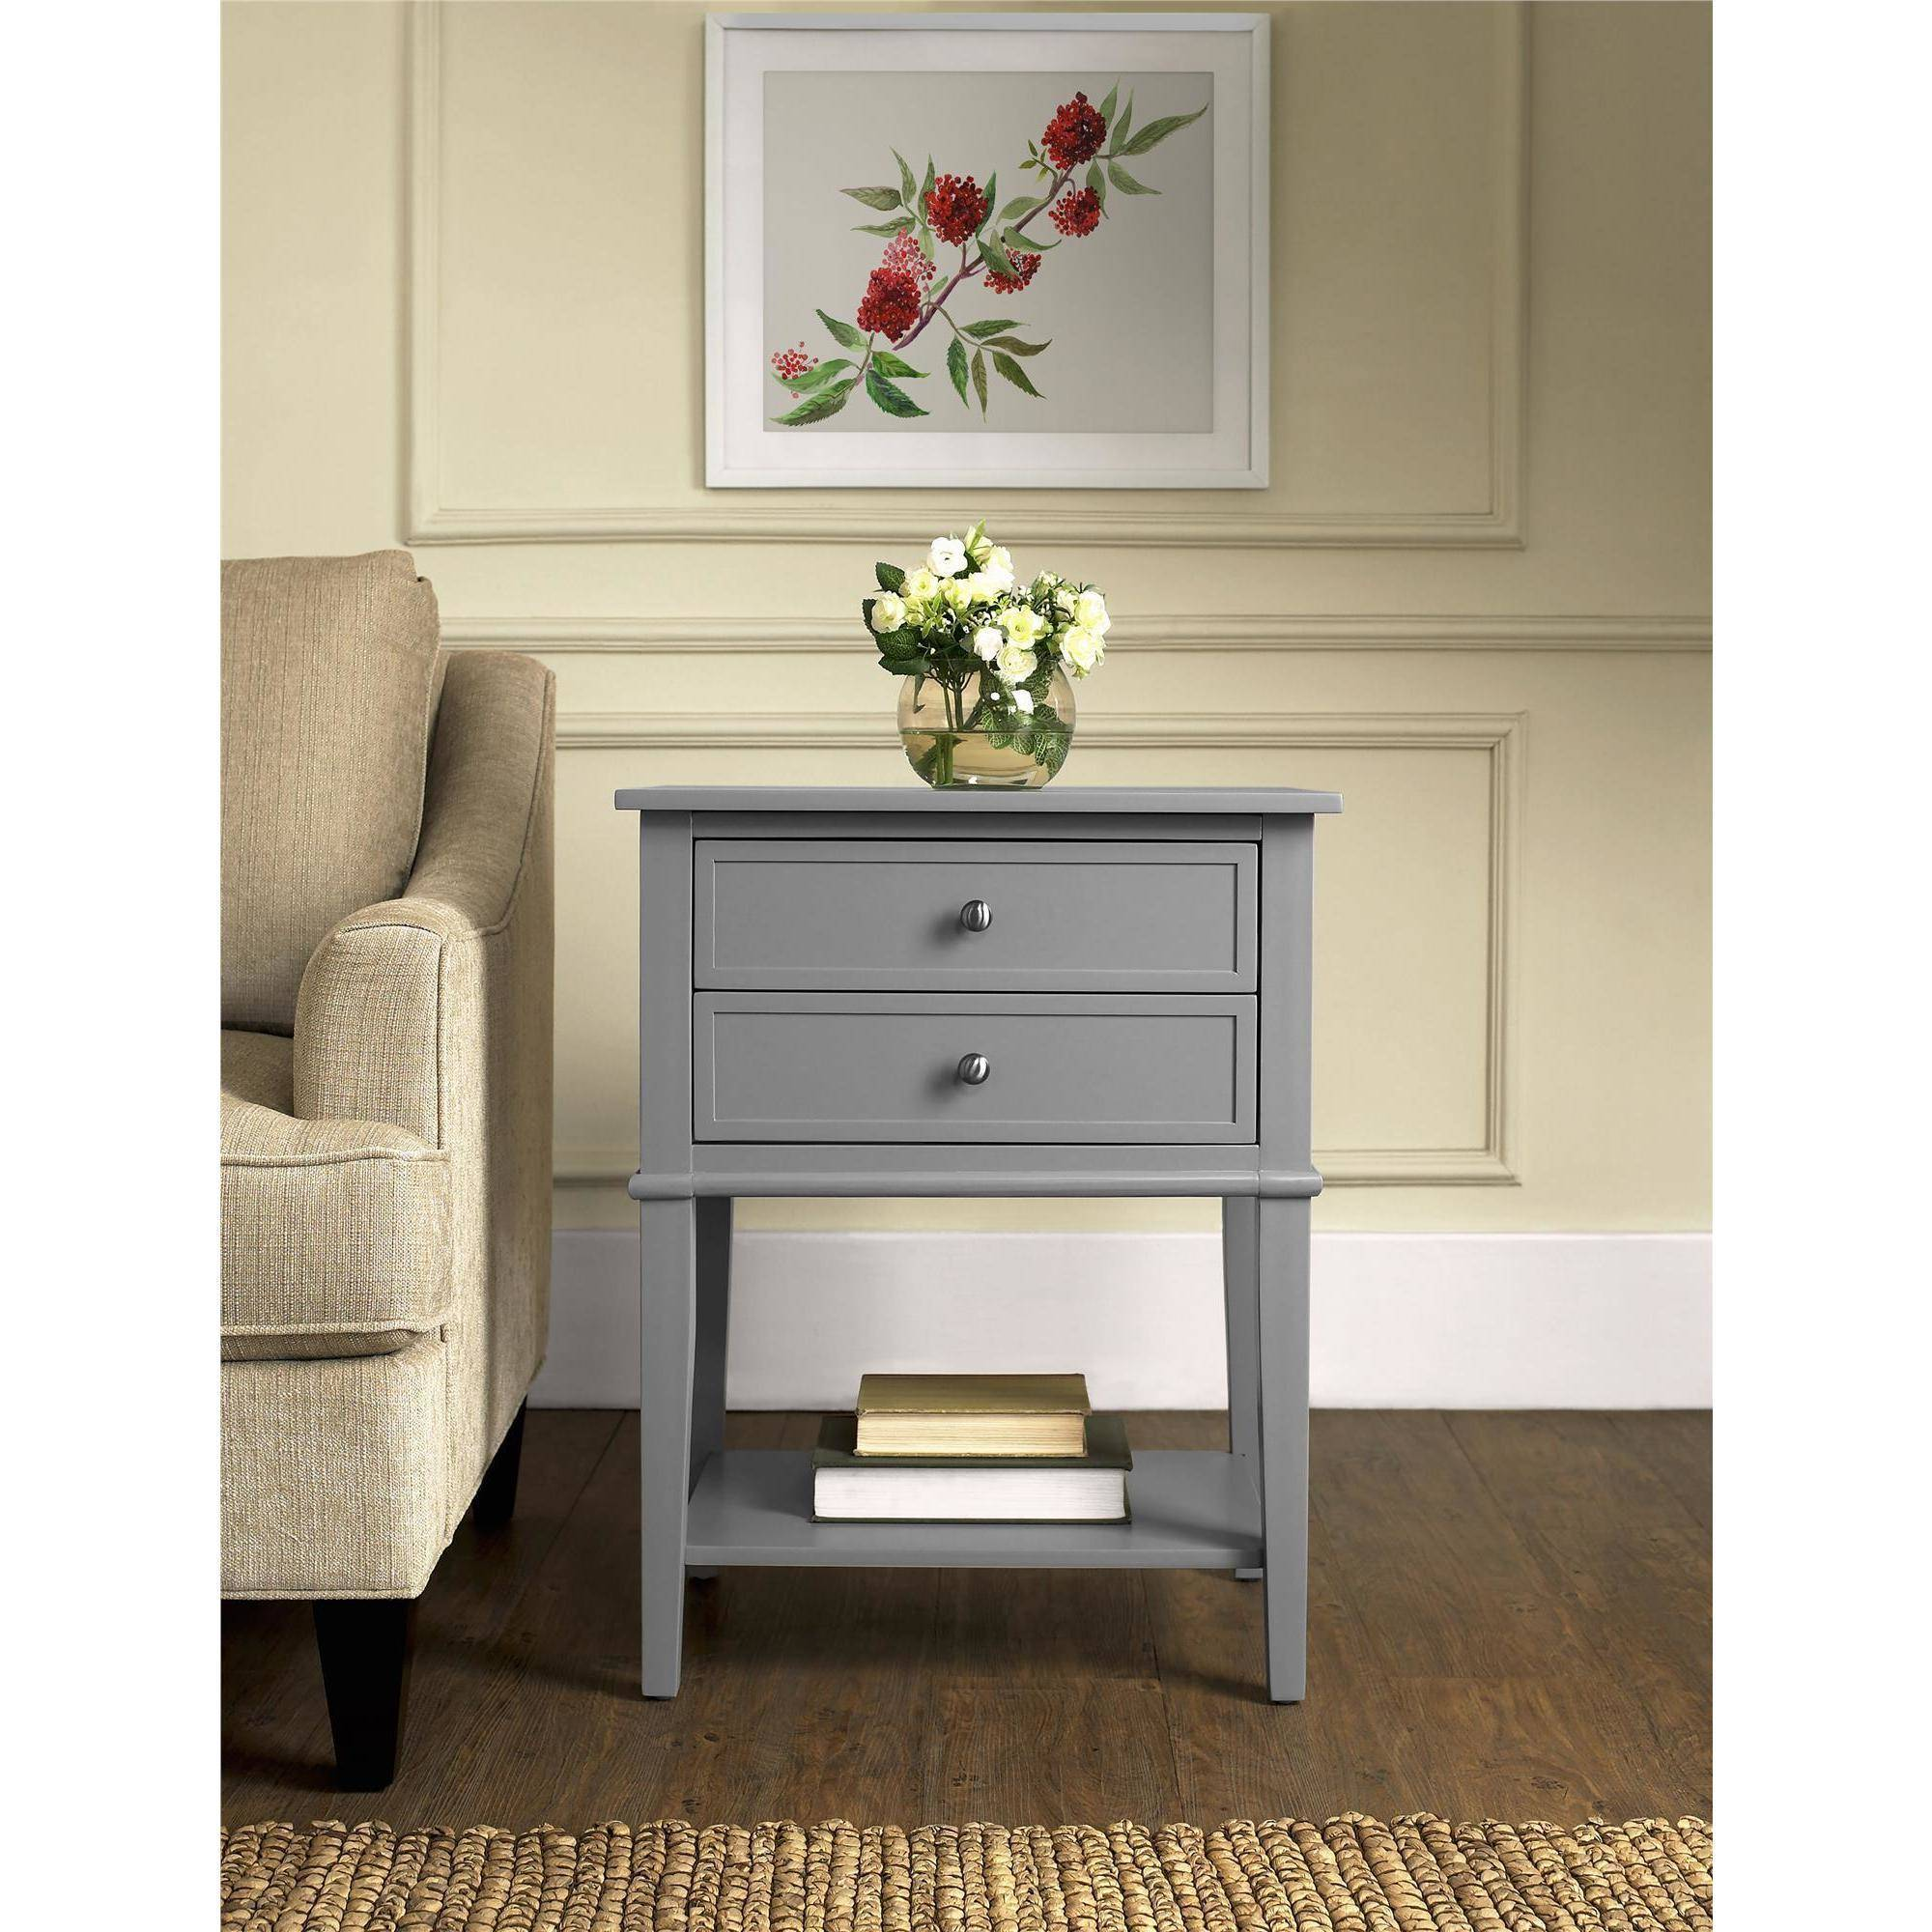 Ameriwood Home Franklin Accent Table With 2 Drawers, Multiple Colors    Walmart.com